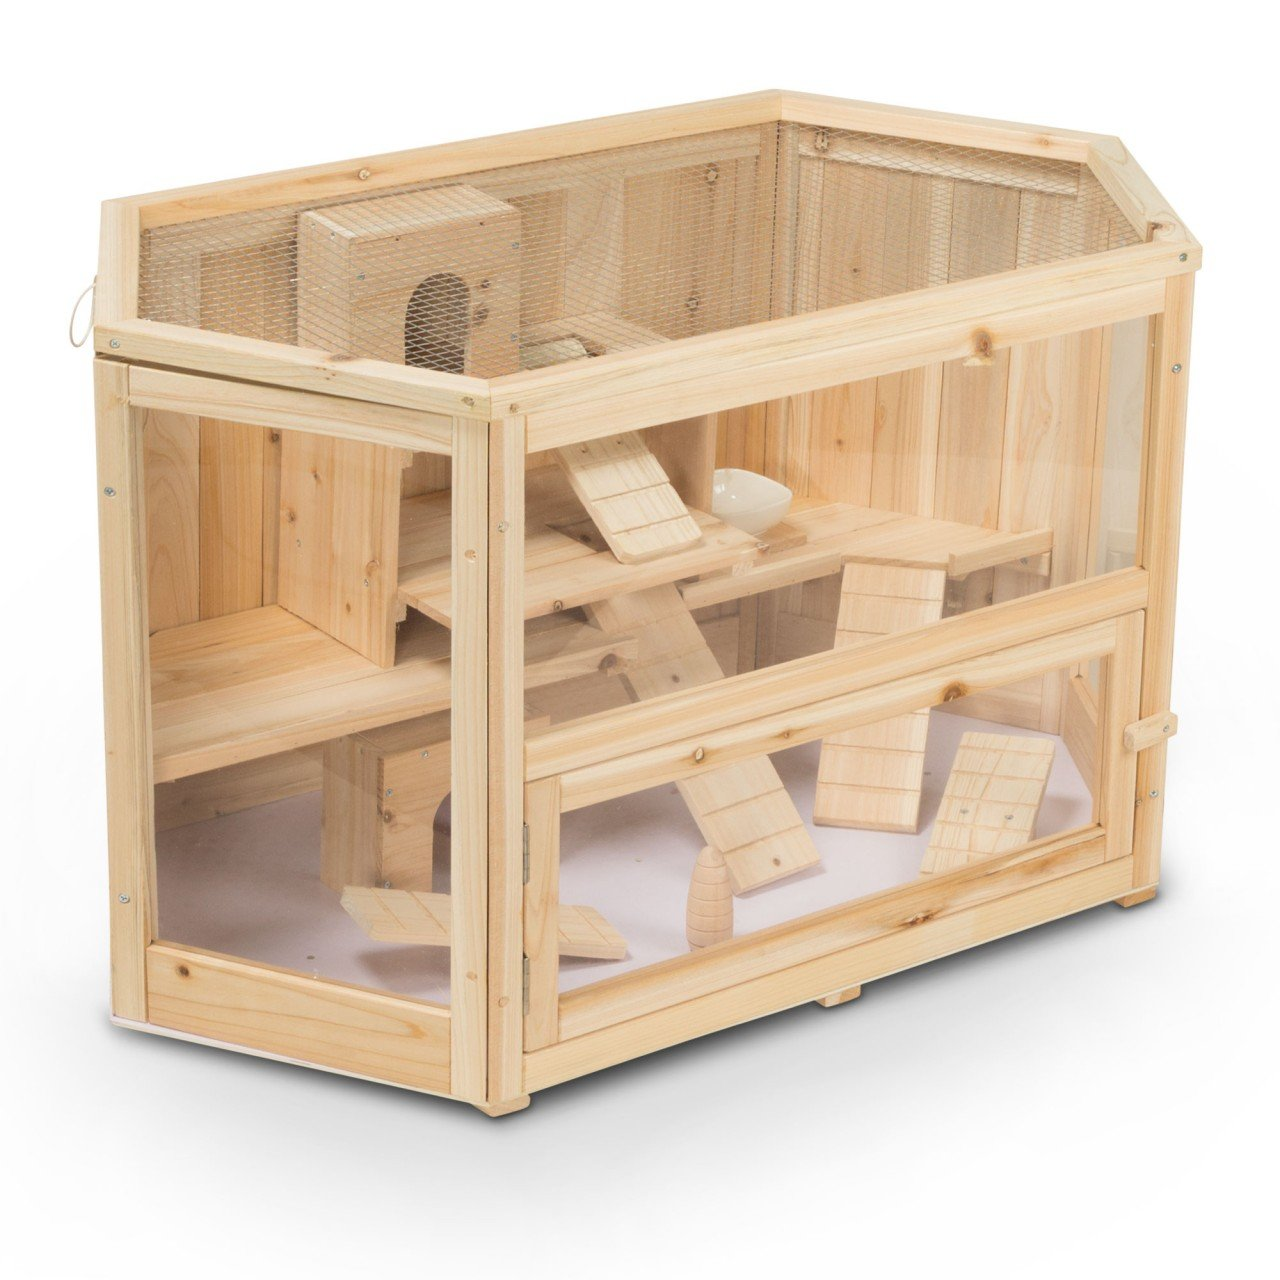 Small animal hutch, guinea pig hutch MATS made of wood, 90x55x55 cm, hamster cage, rodent cage, rodents house